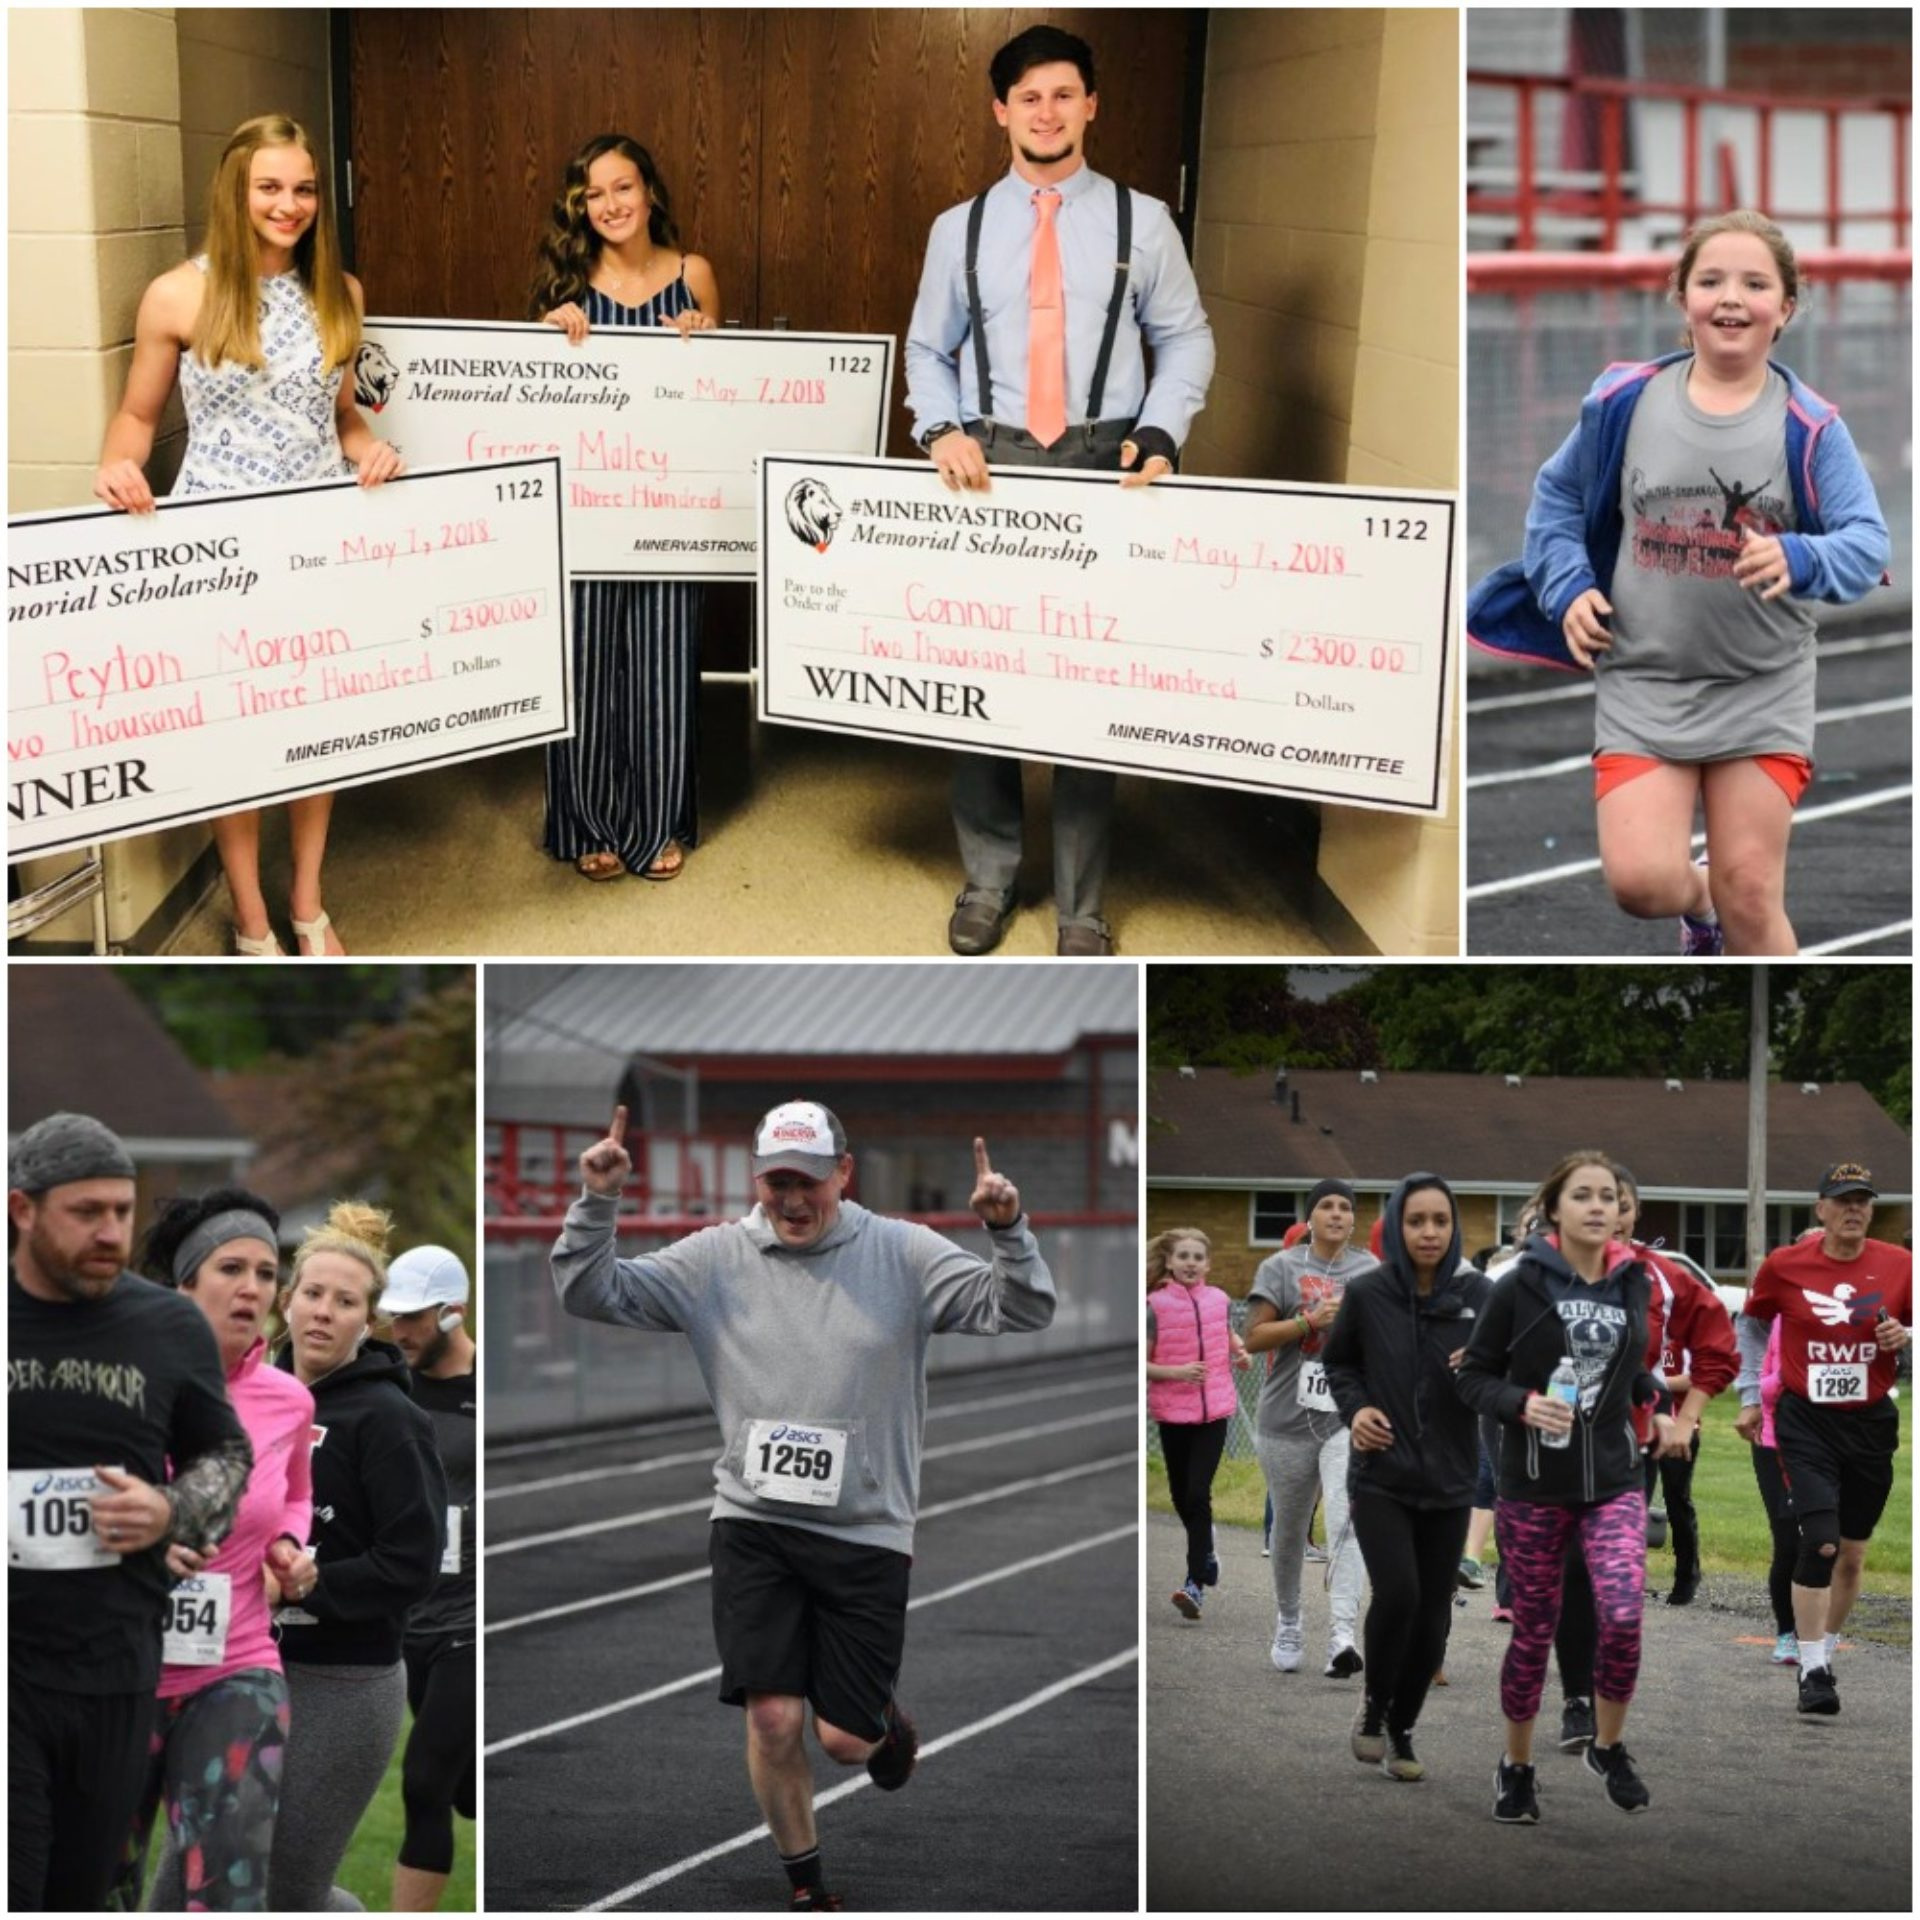 #MinervaStrong Memorial 5K – Friday, May 3, 2019 presented by Ron Marhofer Auto Family, Minerva Manufacturing Facility (AAM), and G.L. Auto Glass/Detailing, All American Scales & Calibration, Normandy Inn / Turkey Poker Run, Robertson Industries